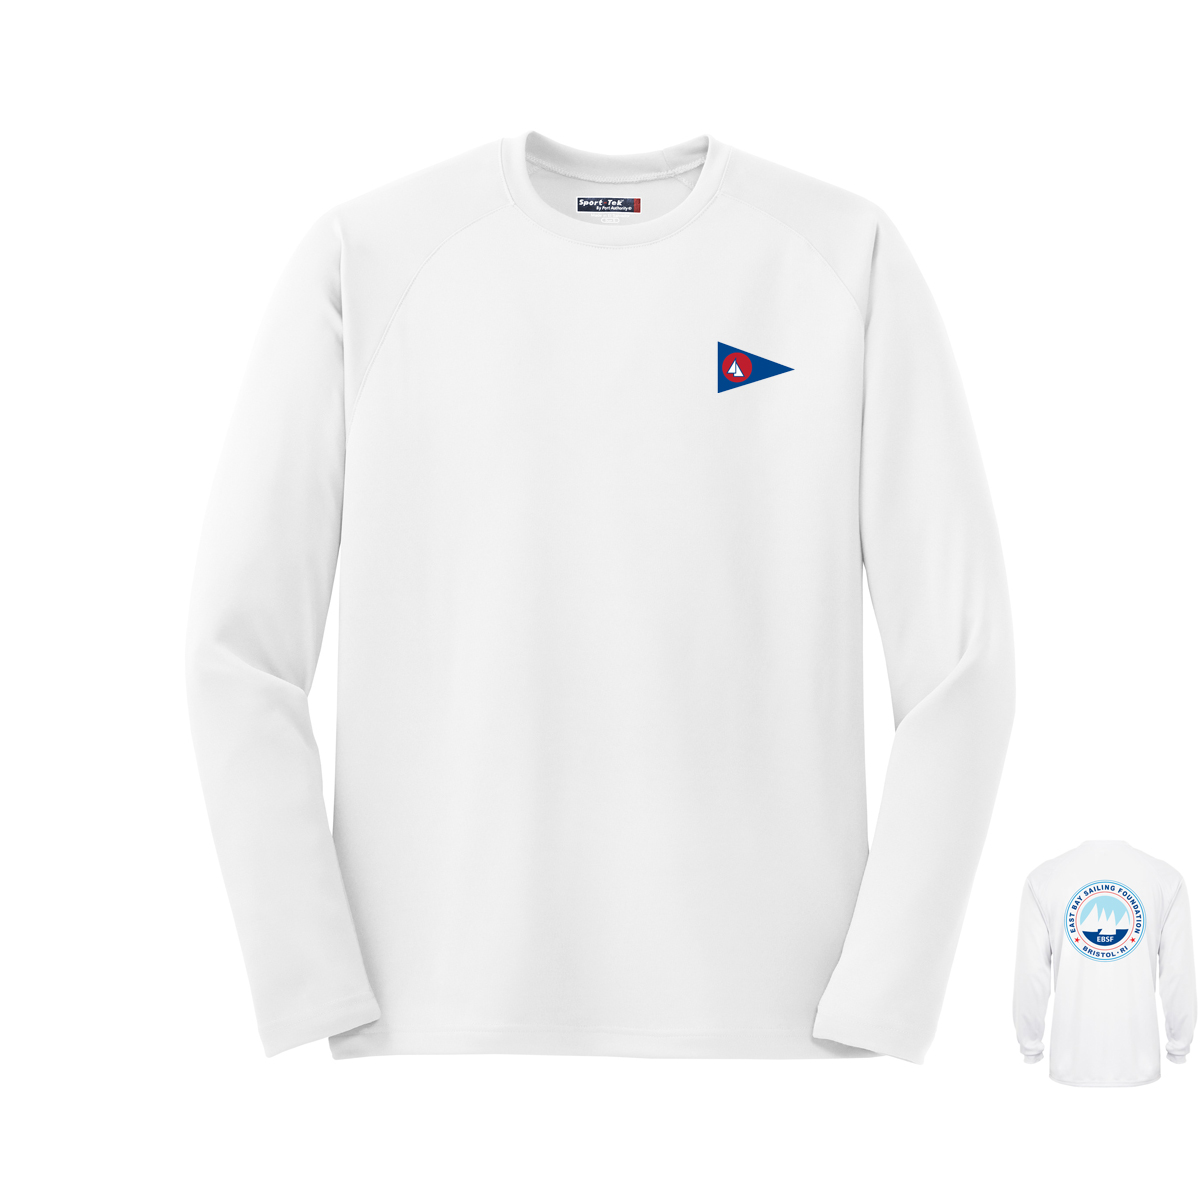 East Bay Sailing Foundation - Men's Long Sleeve Tech Tee